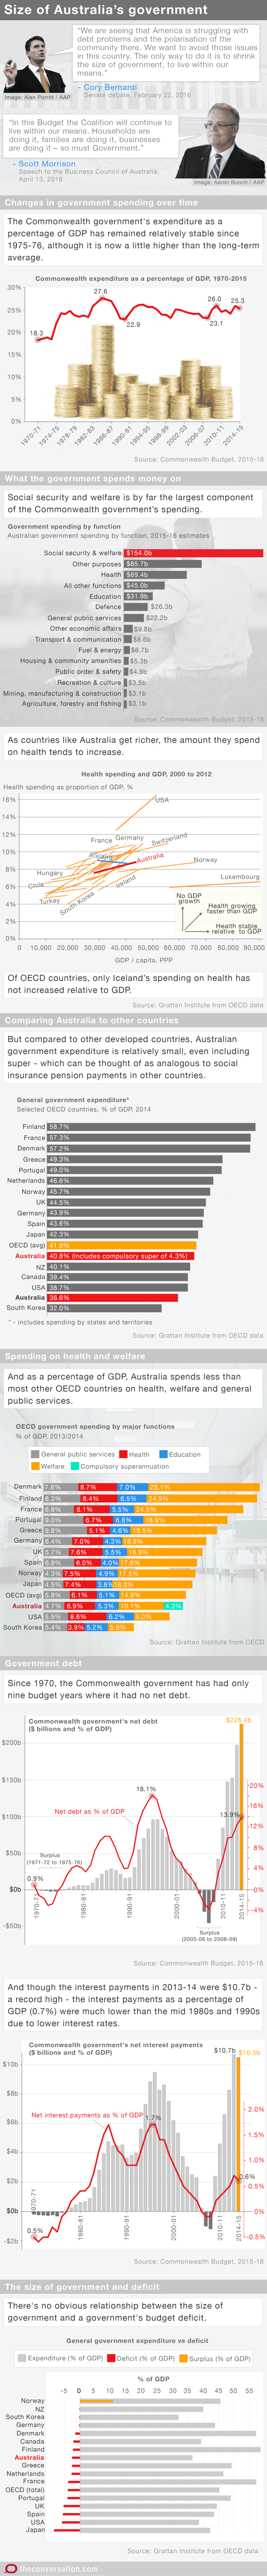 Infographic: the size of Australia's government